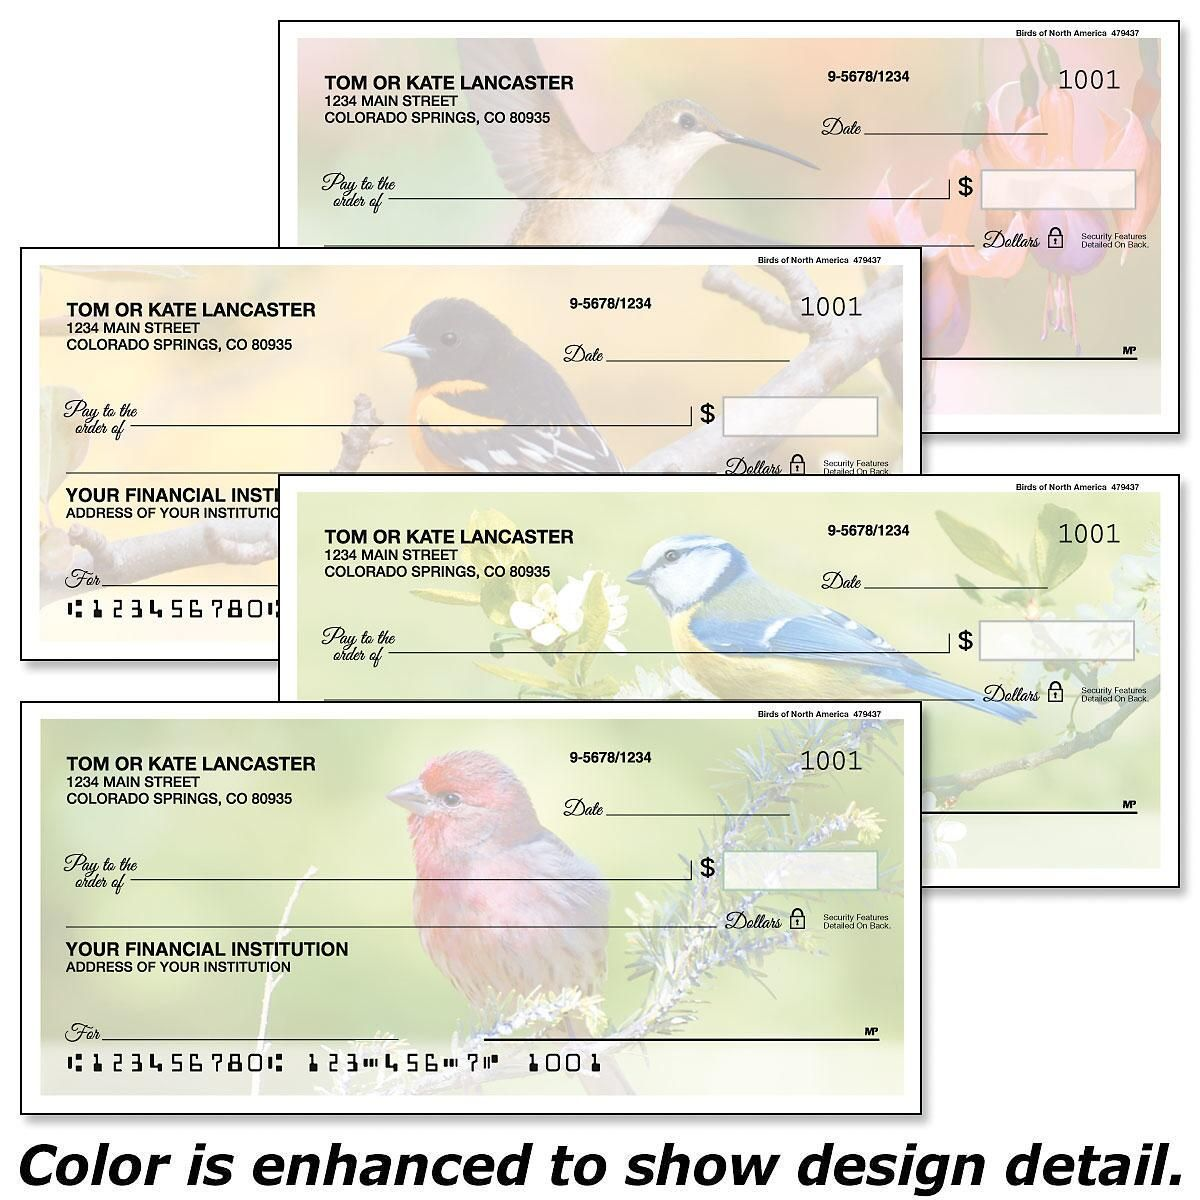 Birds of America Duplicate Checks